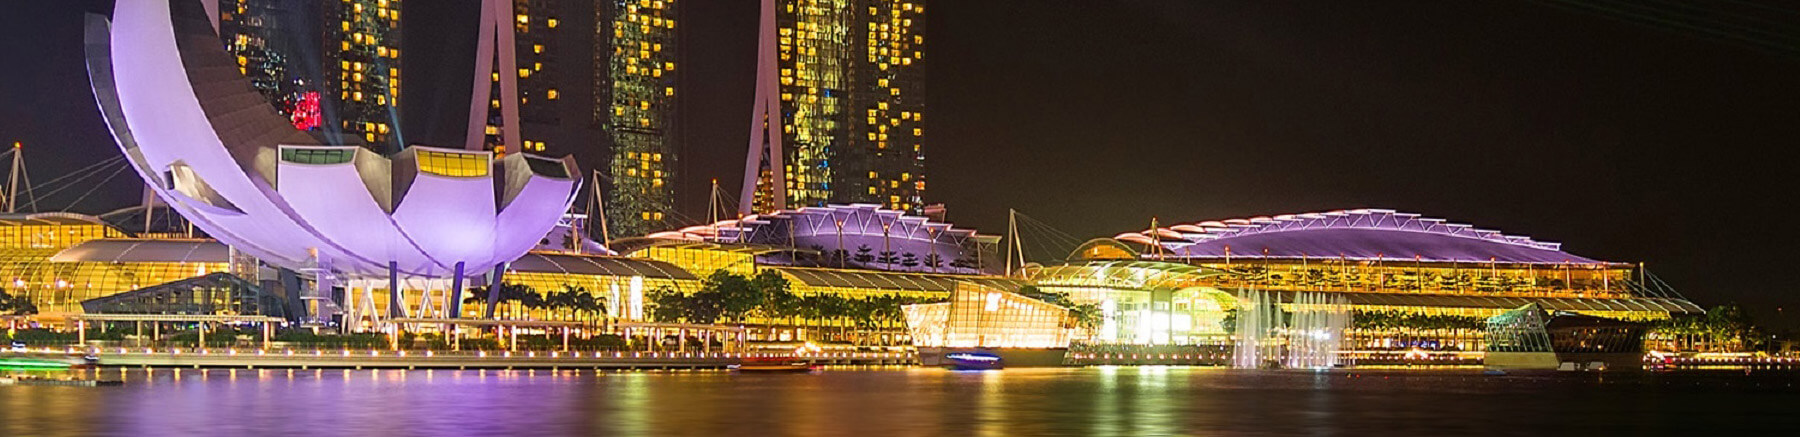 Singapore's Marina Bay at the end of the day with a boat in the foreground